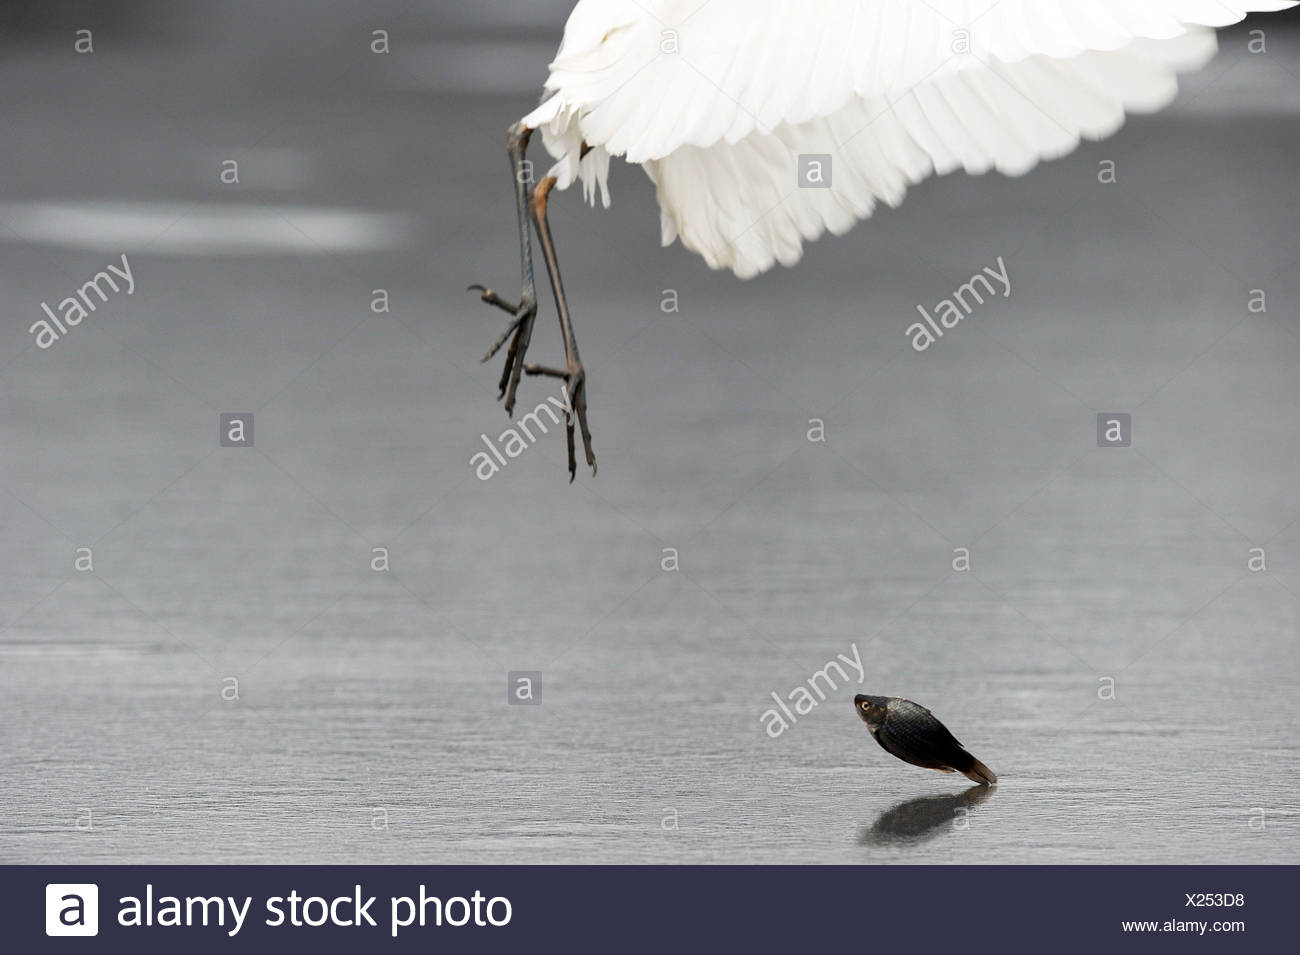 great egret, Great White Egret (Egretta alba, Casmerodius albus, Ardea alba), lets fall a caught fish on an ice sheet of a frozen lake, Hungary - Stock Image